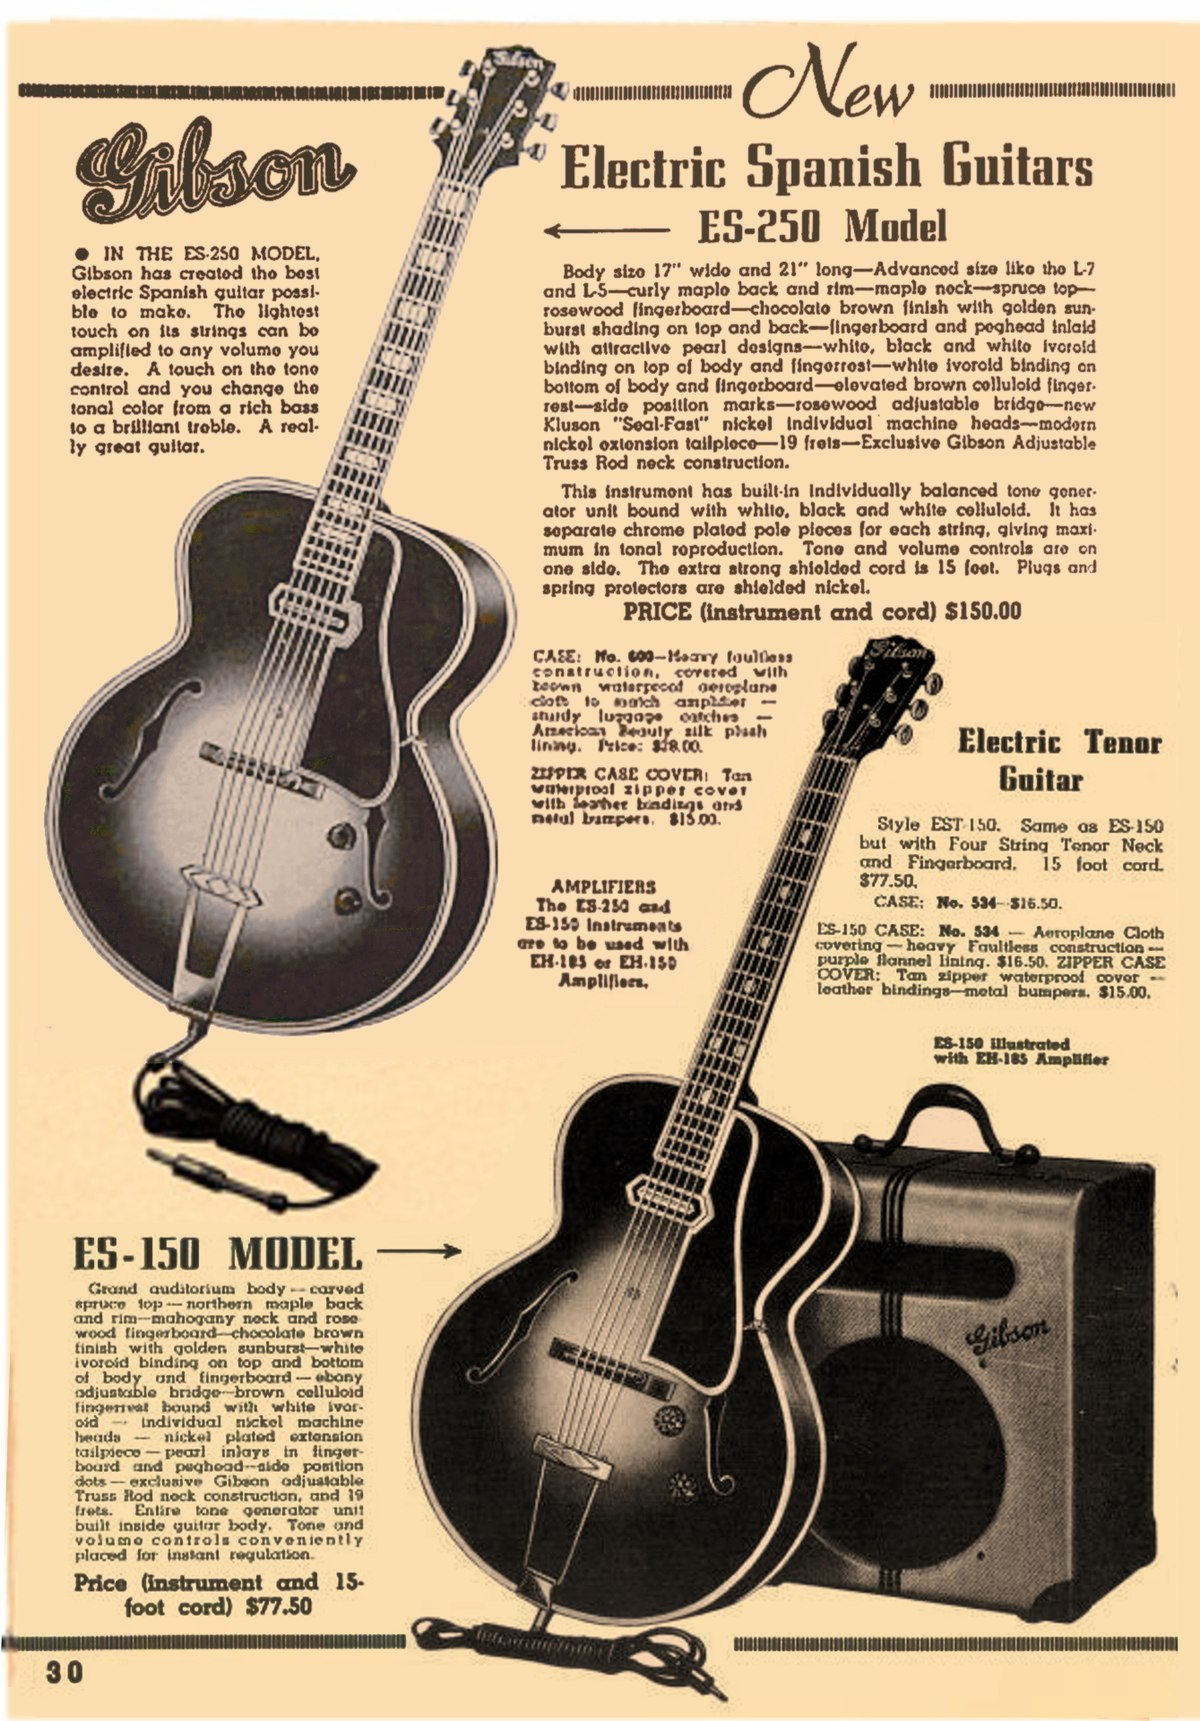 speaker amp wiring diagram trail tech vector gibson es-150 - wikipedia